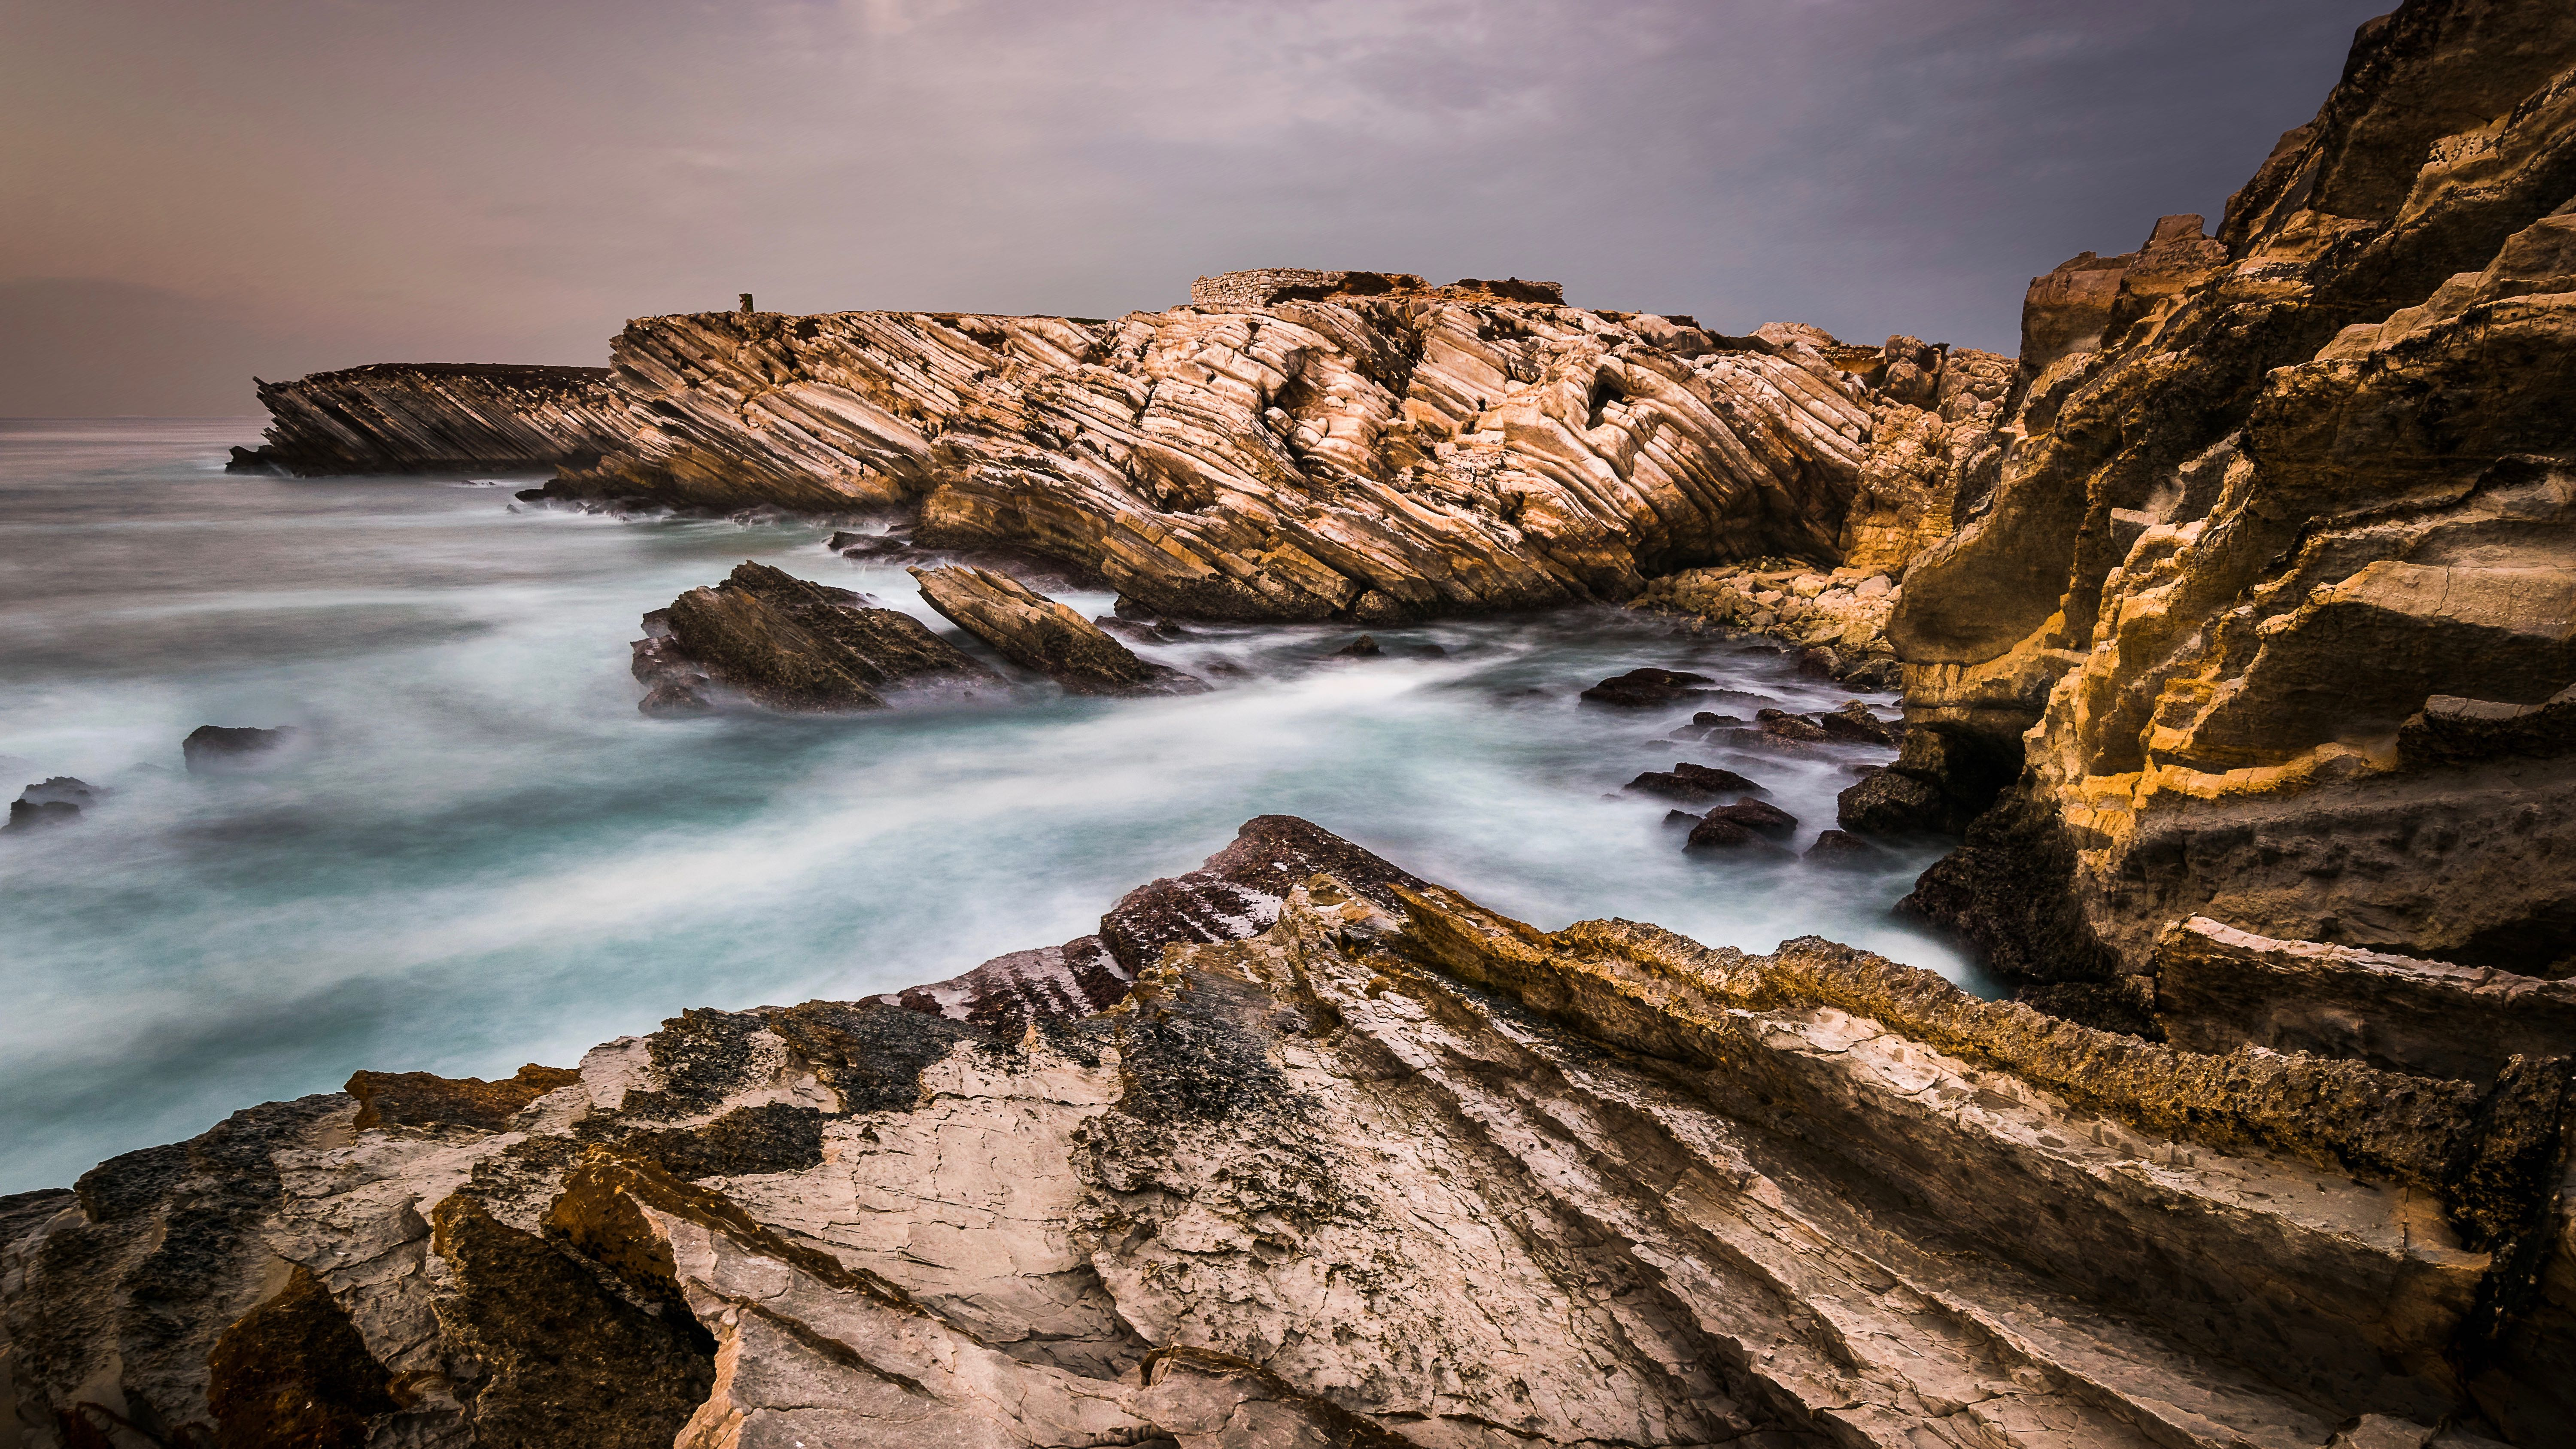 Tilted_Jurassic_Carbonate_Rock_Layers_at_Baleal_in_Portugal